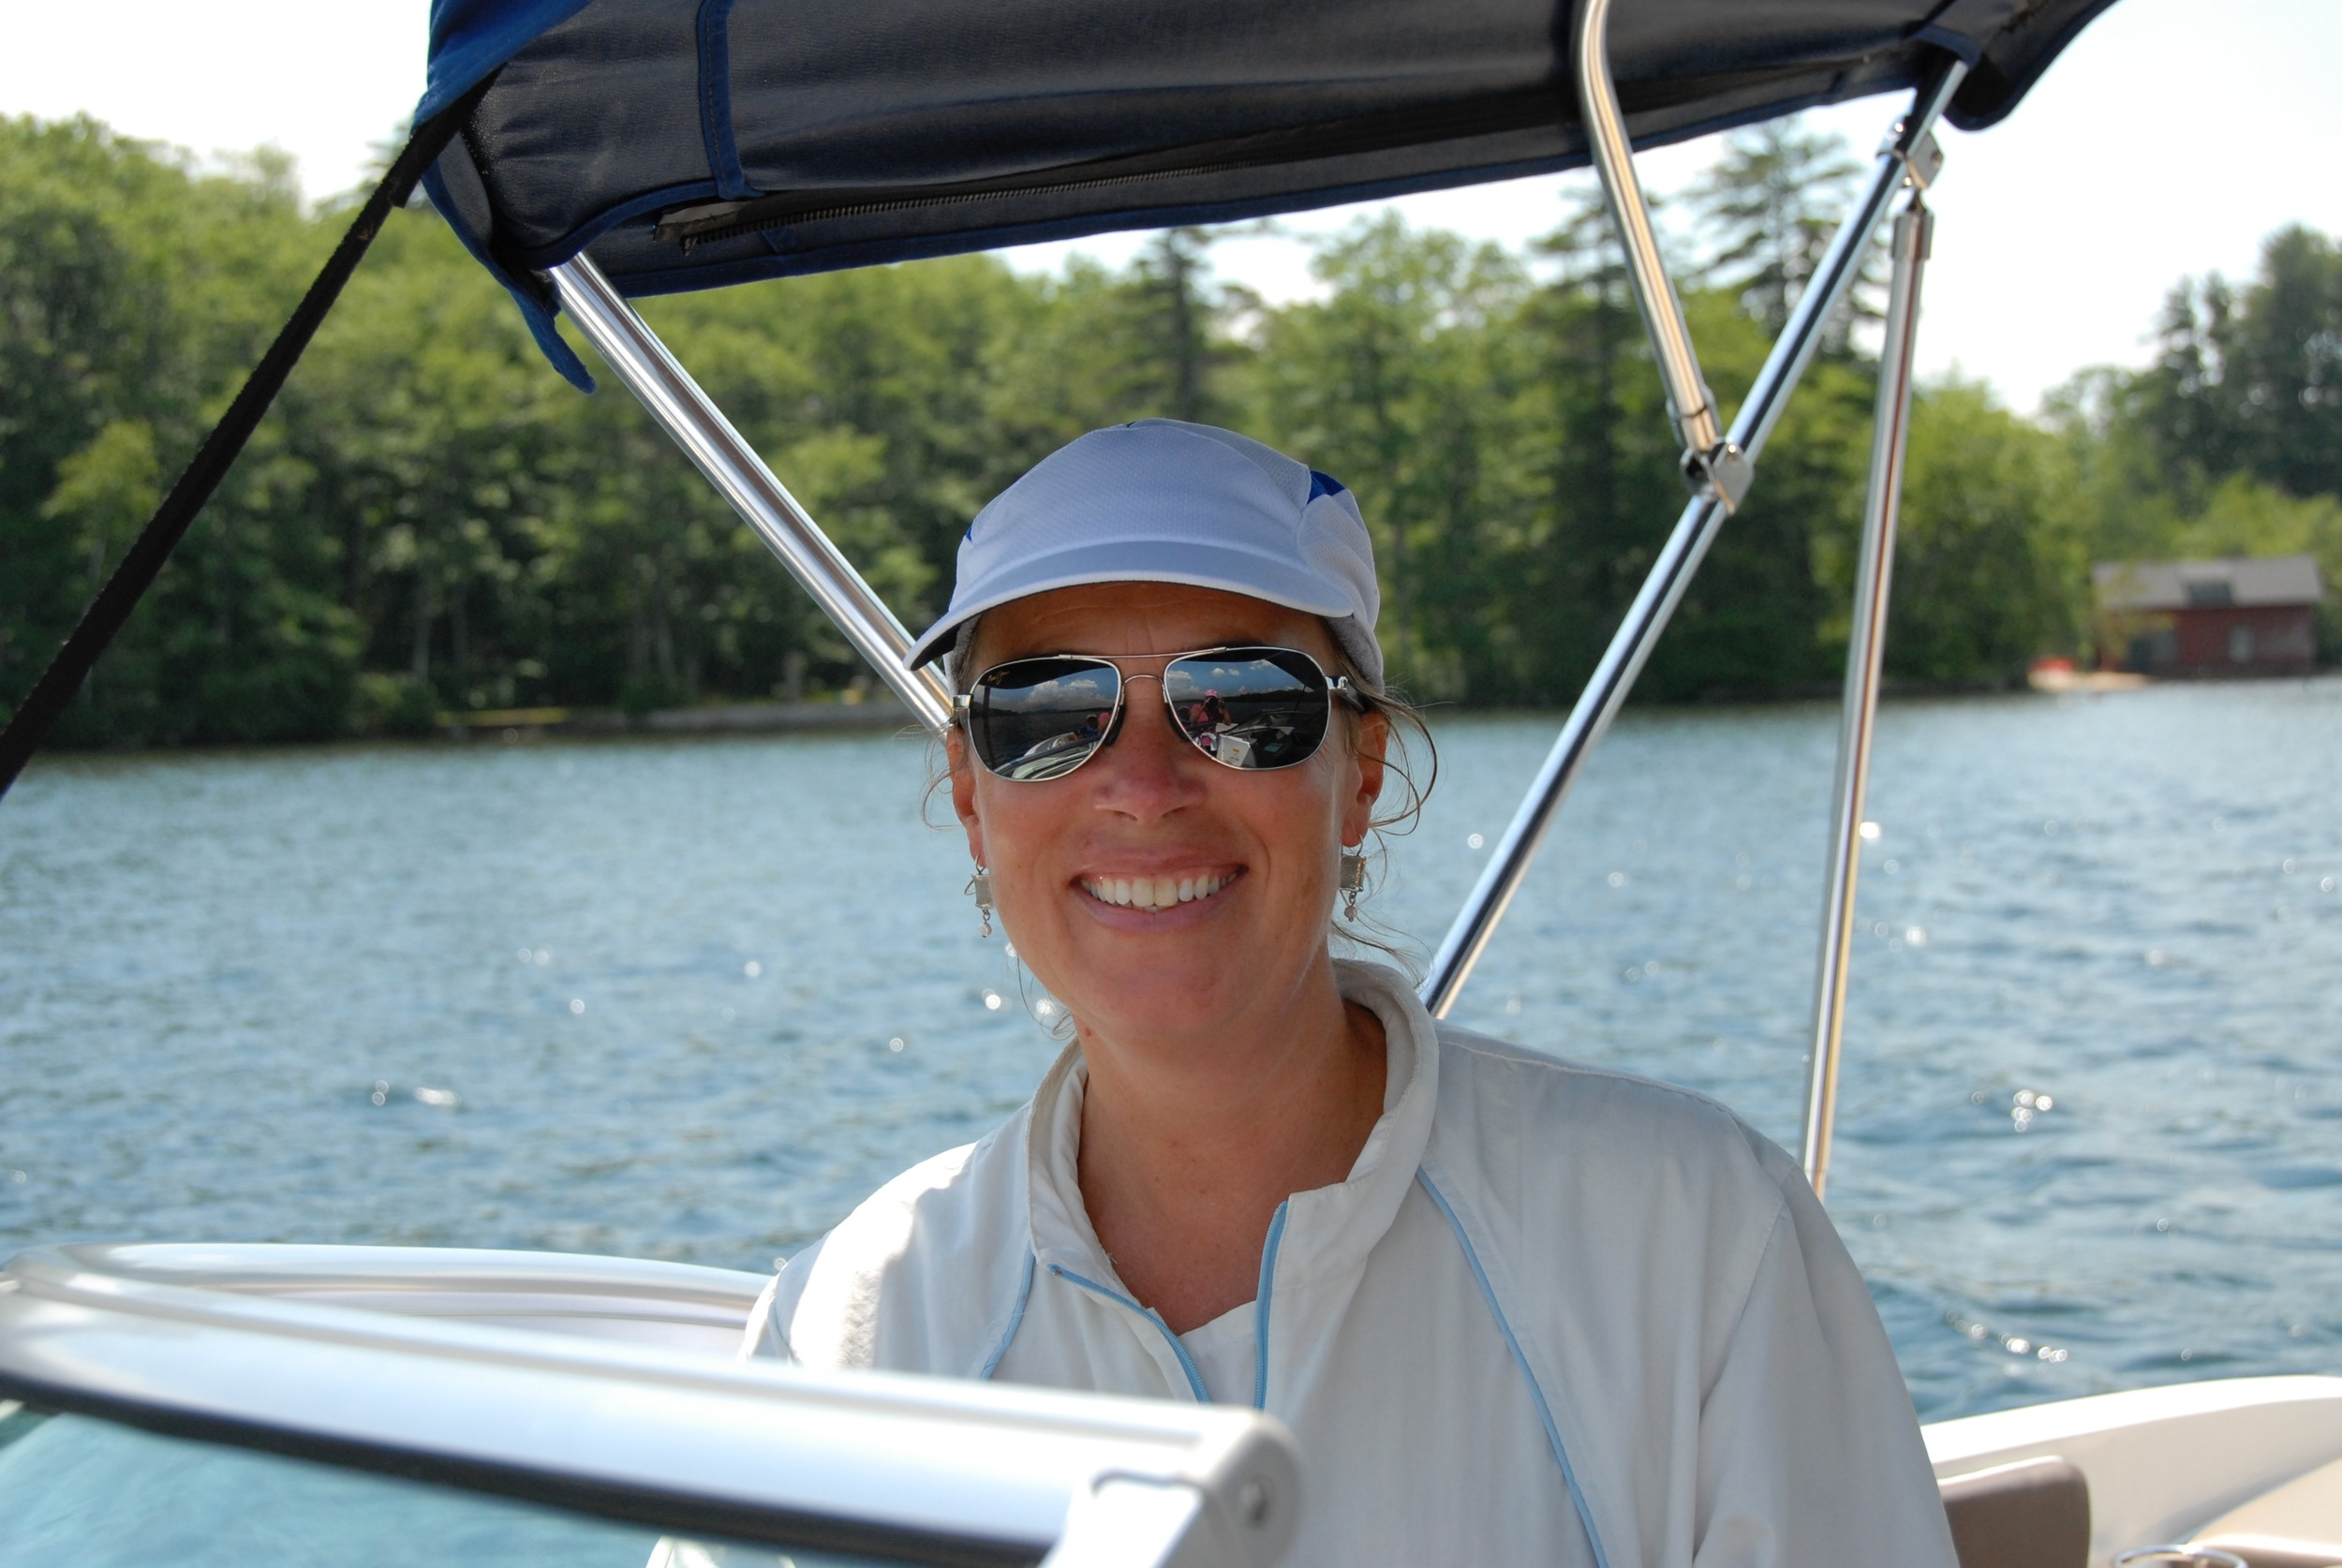 Cindy O'Leary, Owner